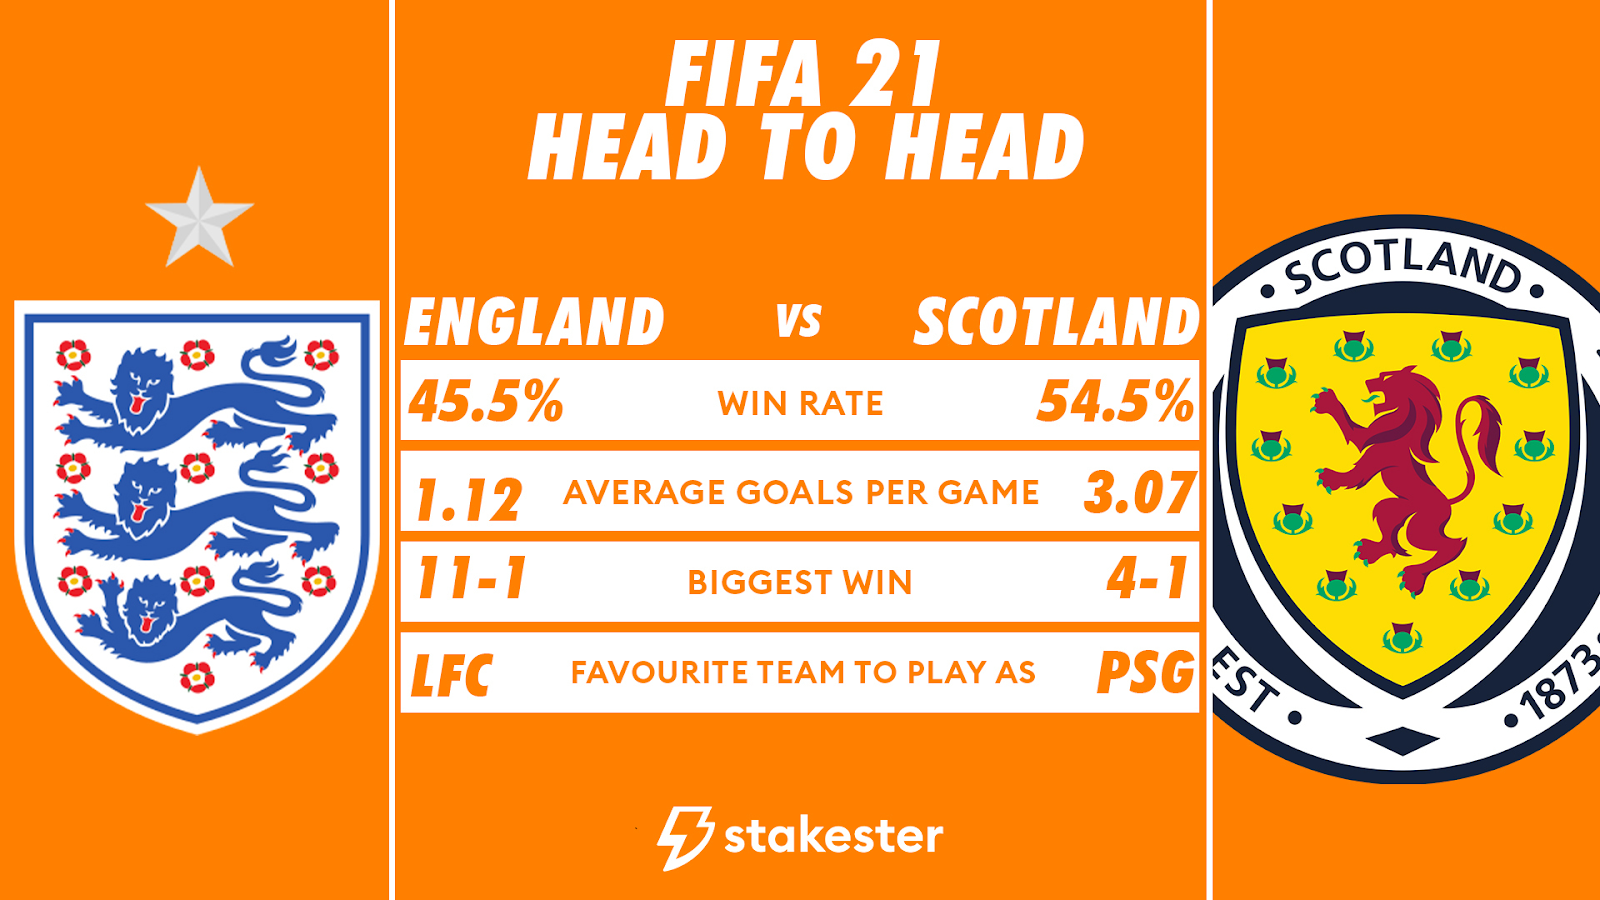 Stakester data for England vs Scotland games in which Scotland won 54.5% of games.